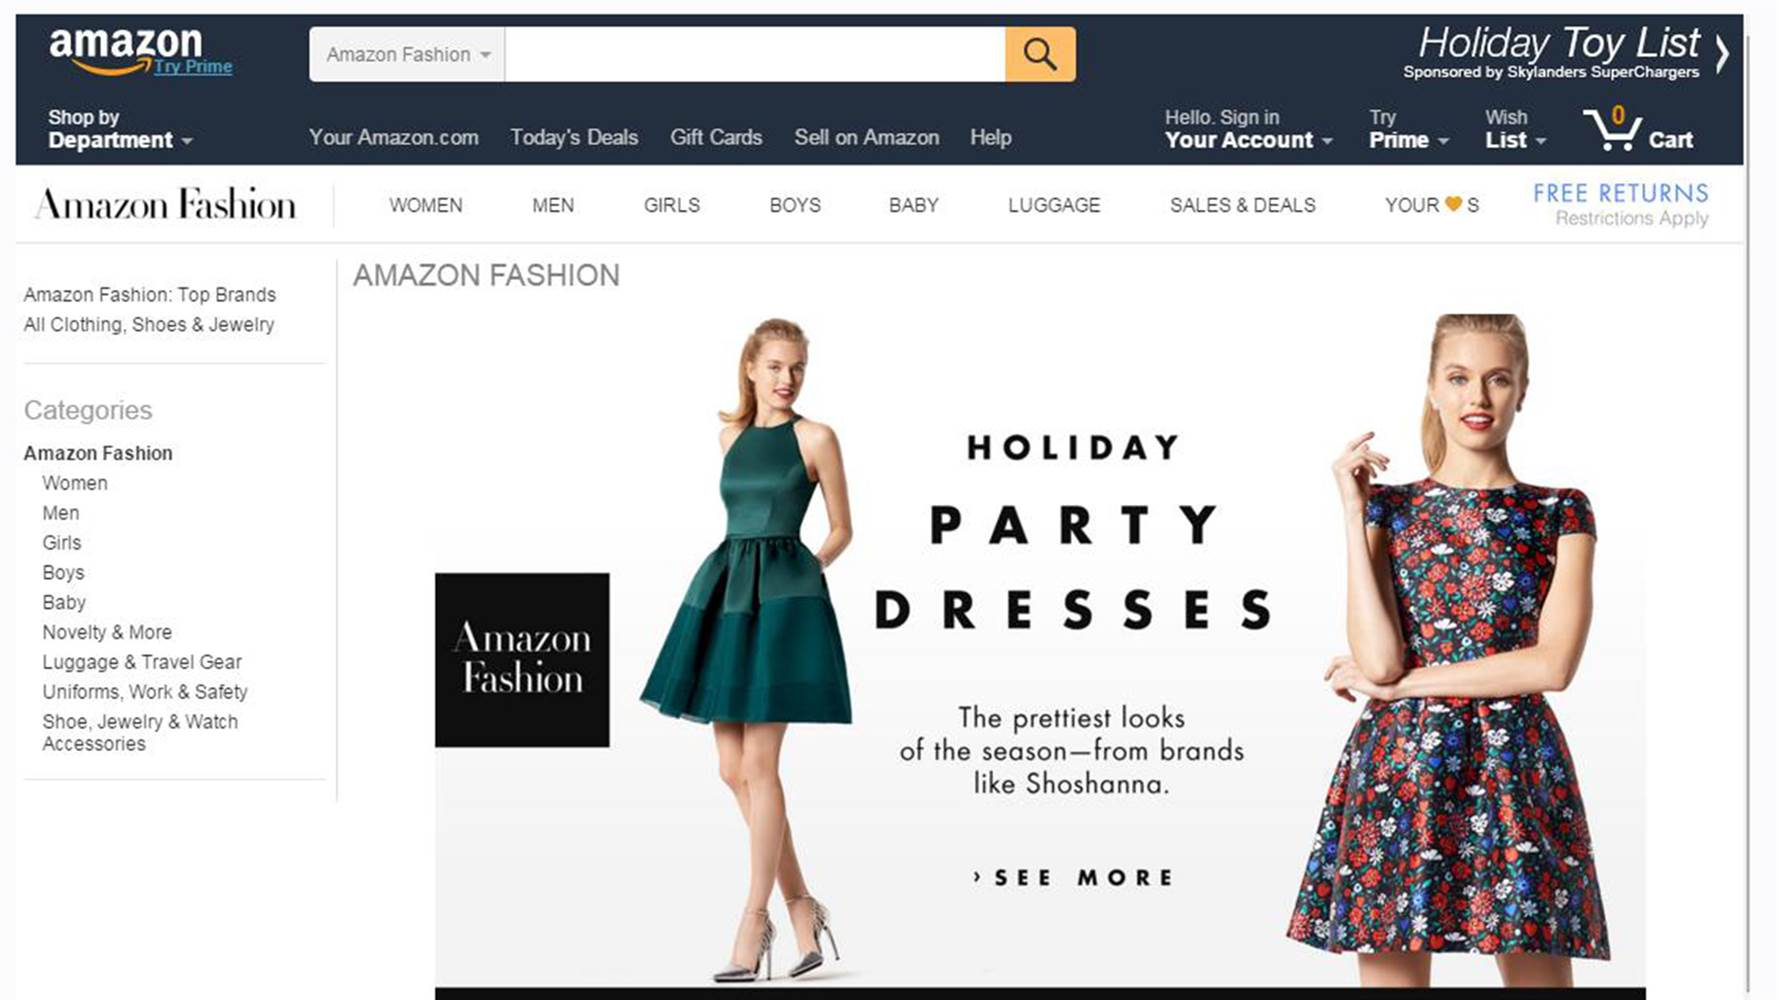 612c373b0 Amazon.com Set to Become America's Leading Clothing Retailer in 2017 ...